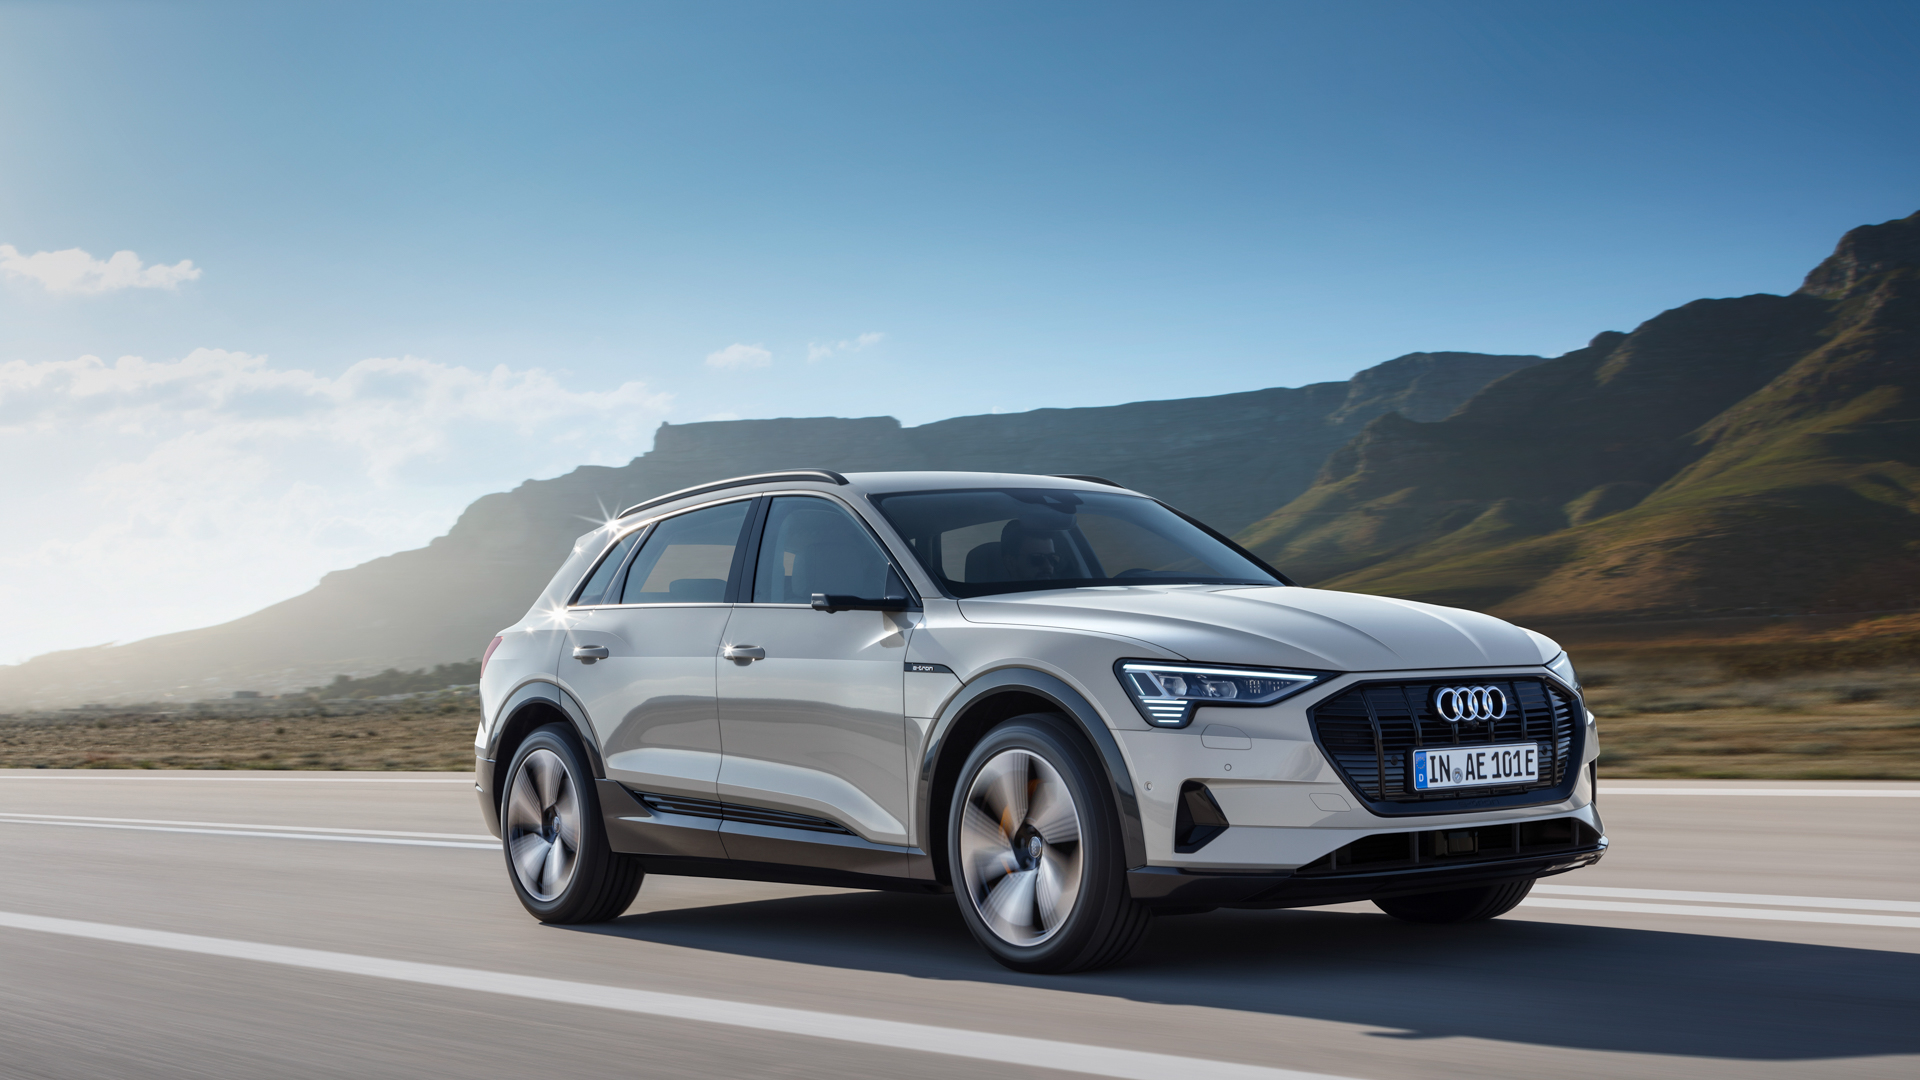 Could the Audi e-tron Made-to-Order sales plan backfire?